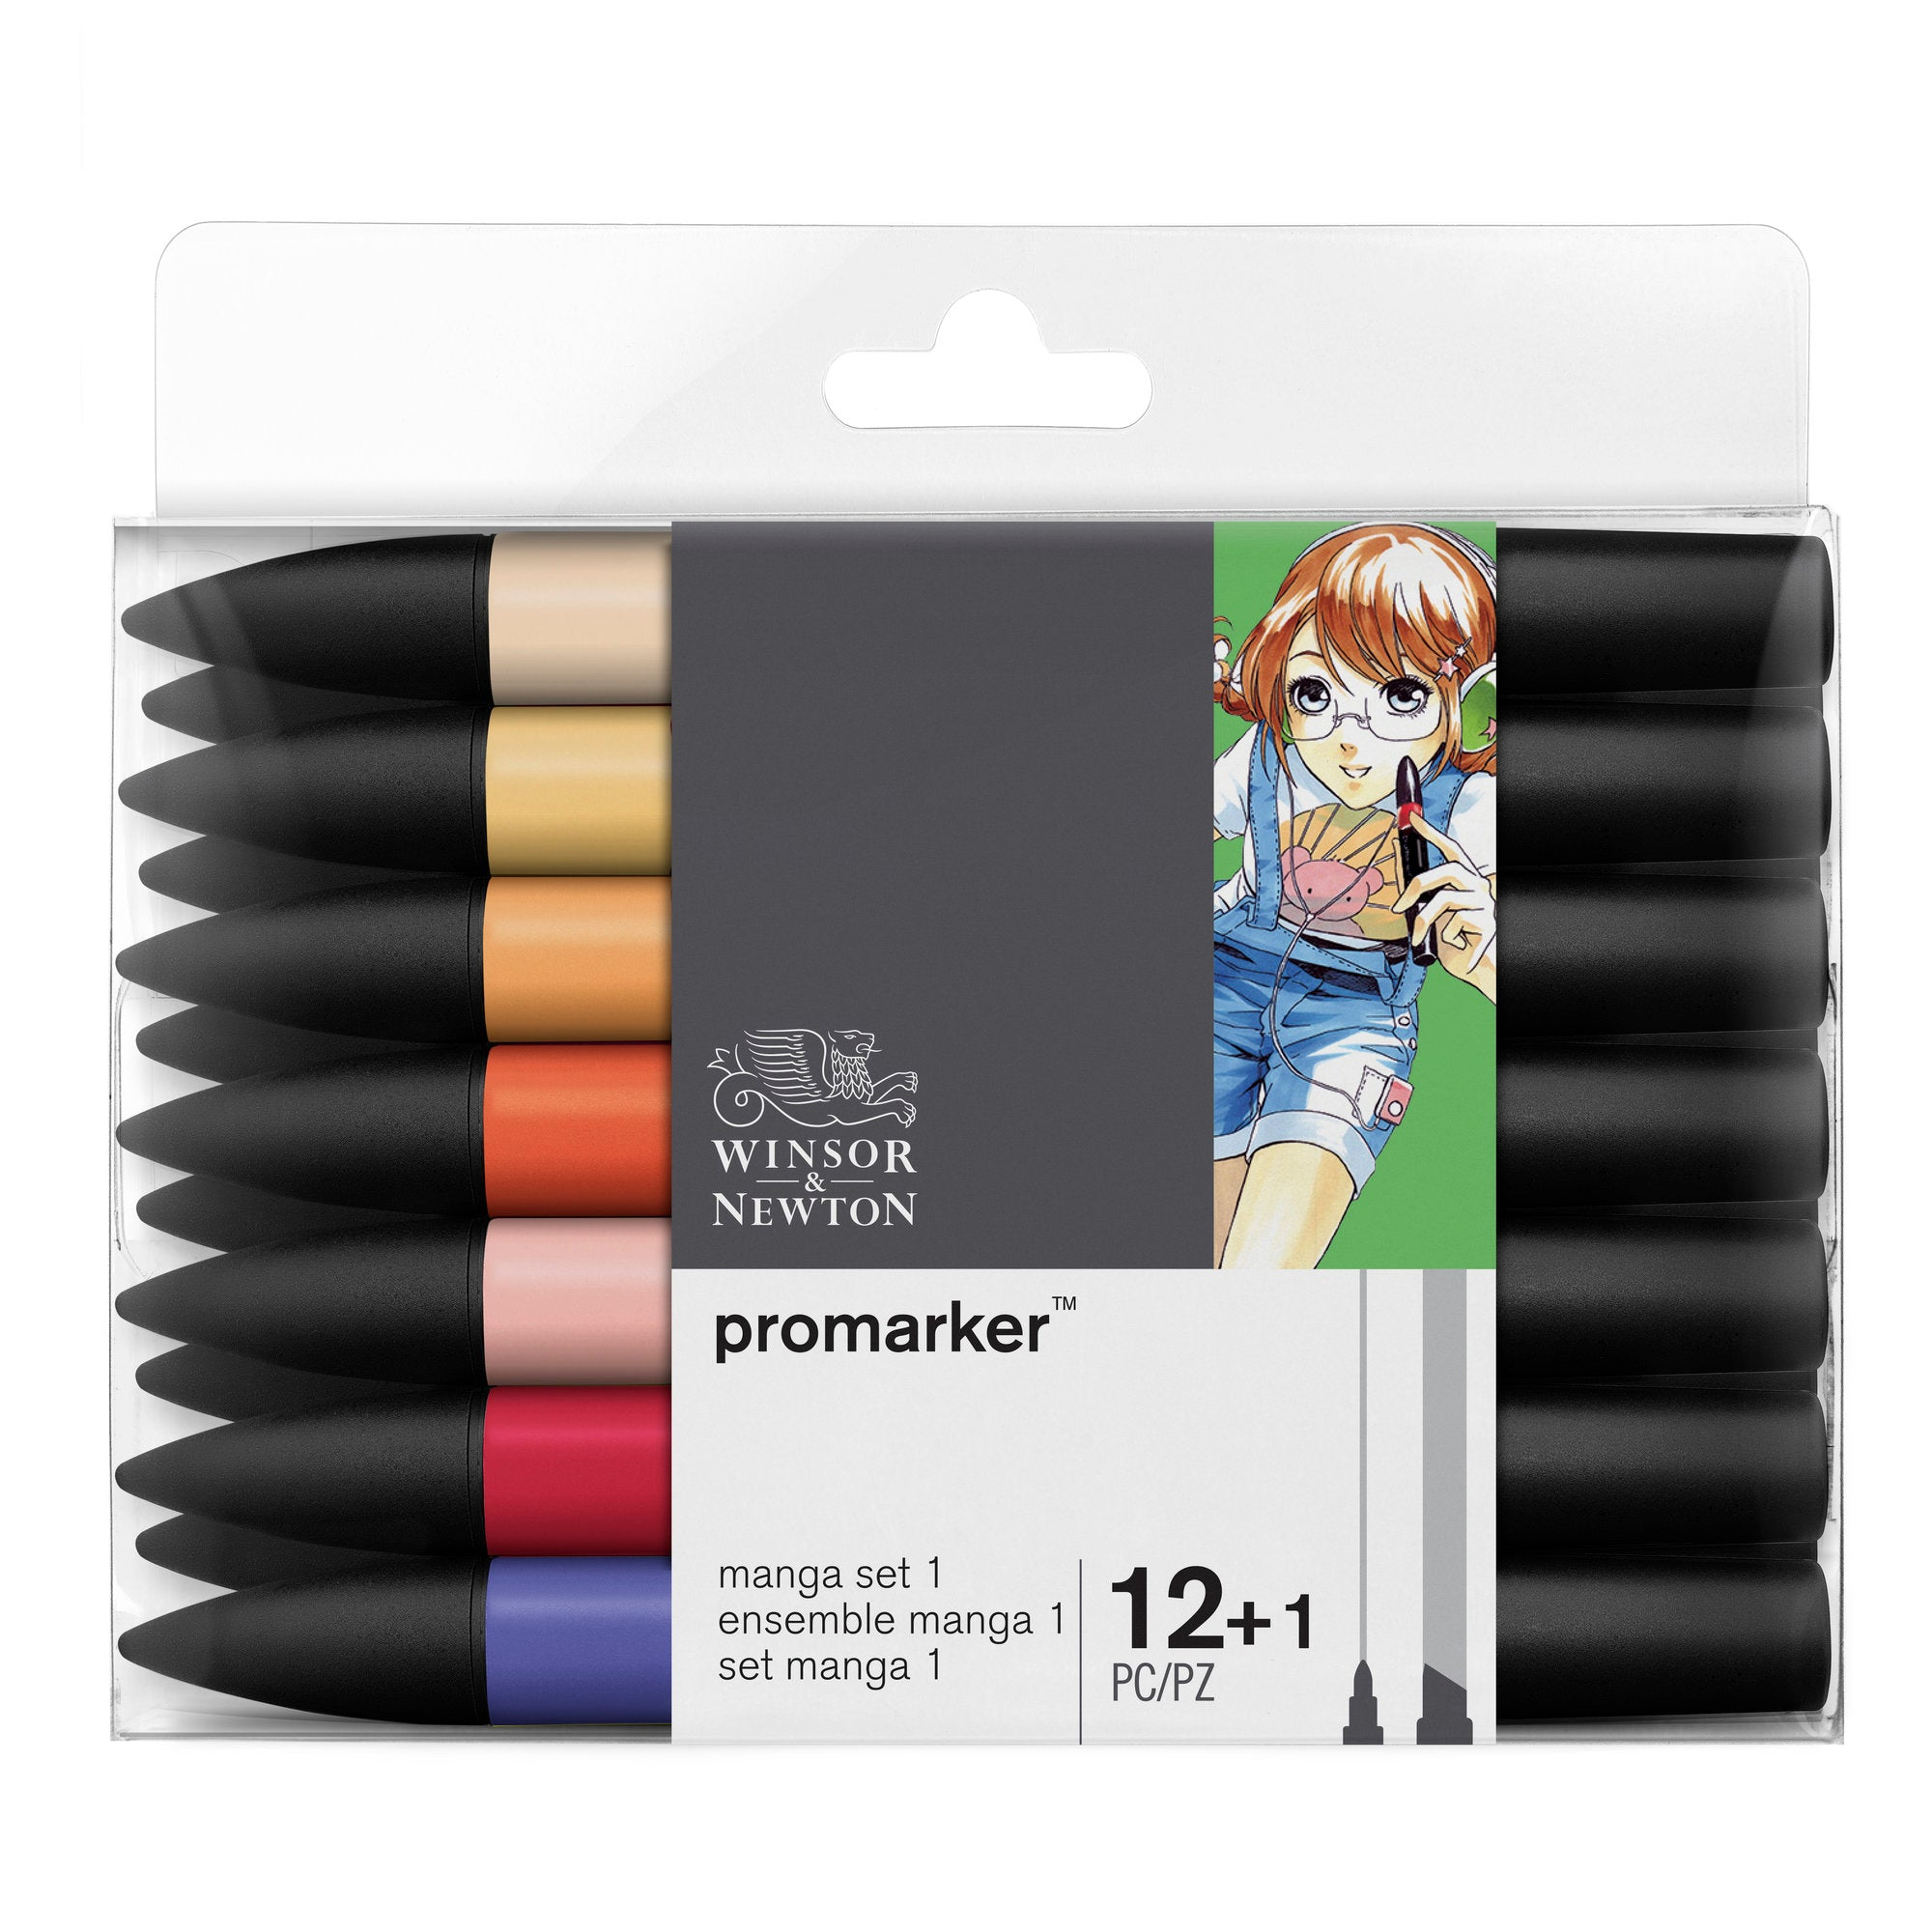 Winsor & Newton Promarker Set of 12+1 Pieces - Manga Set 1